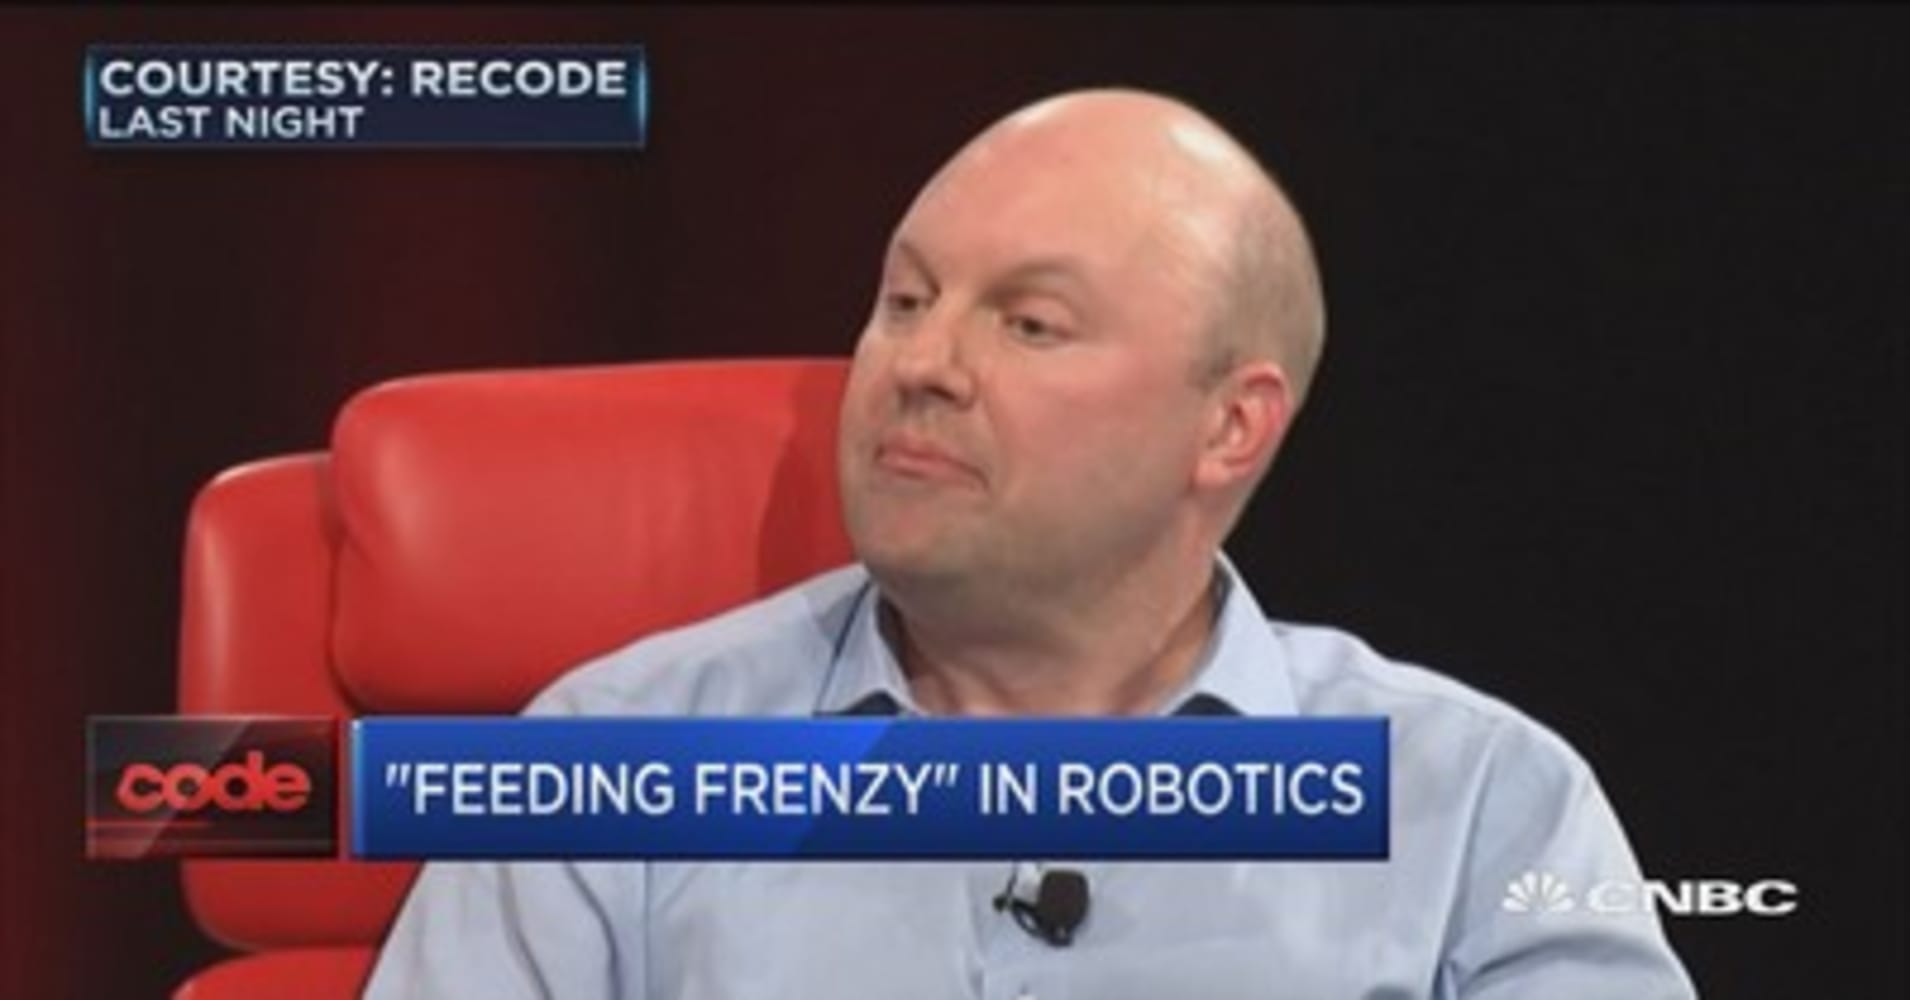 Marc Andreessen says we're wrong about the robots stealing jobs, just like we've always been